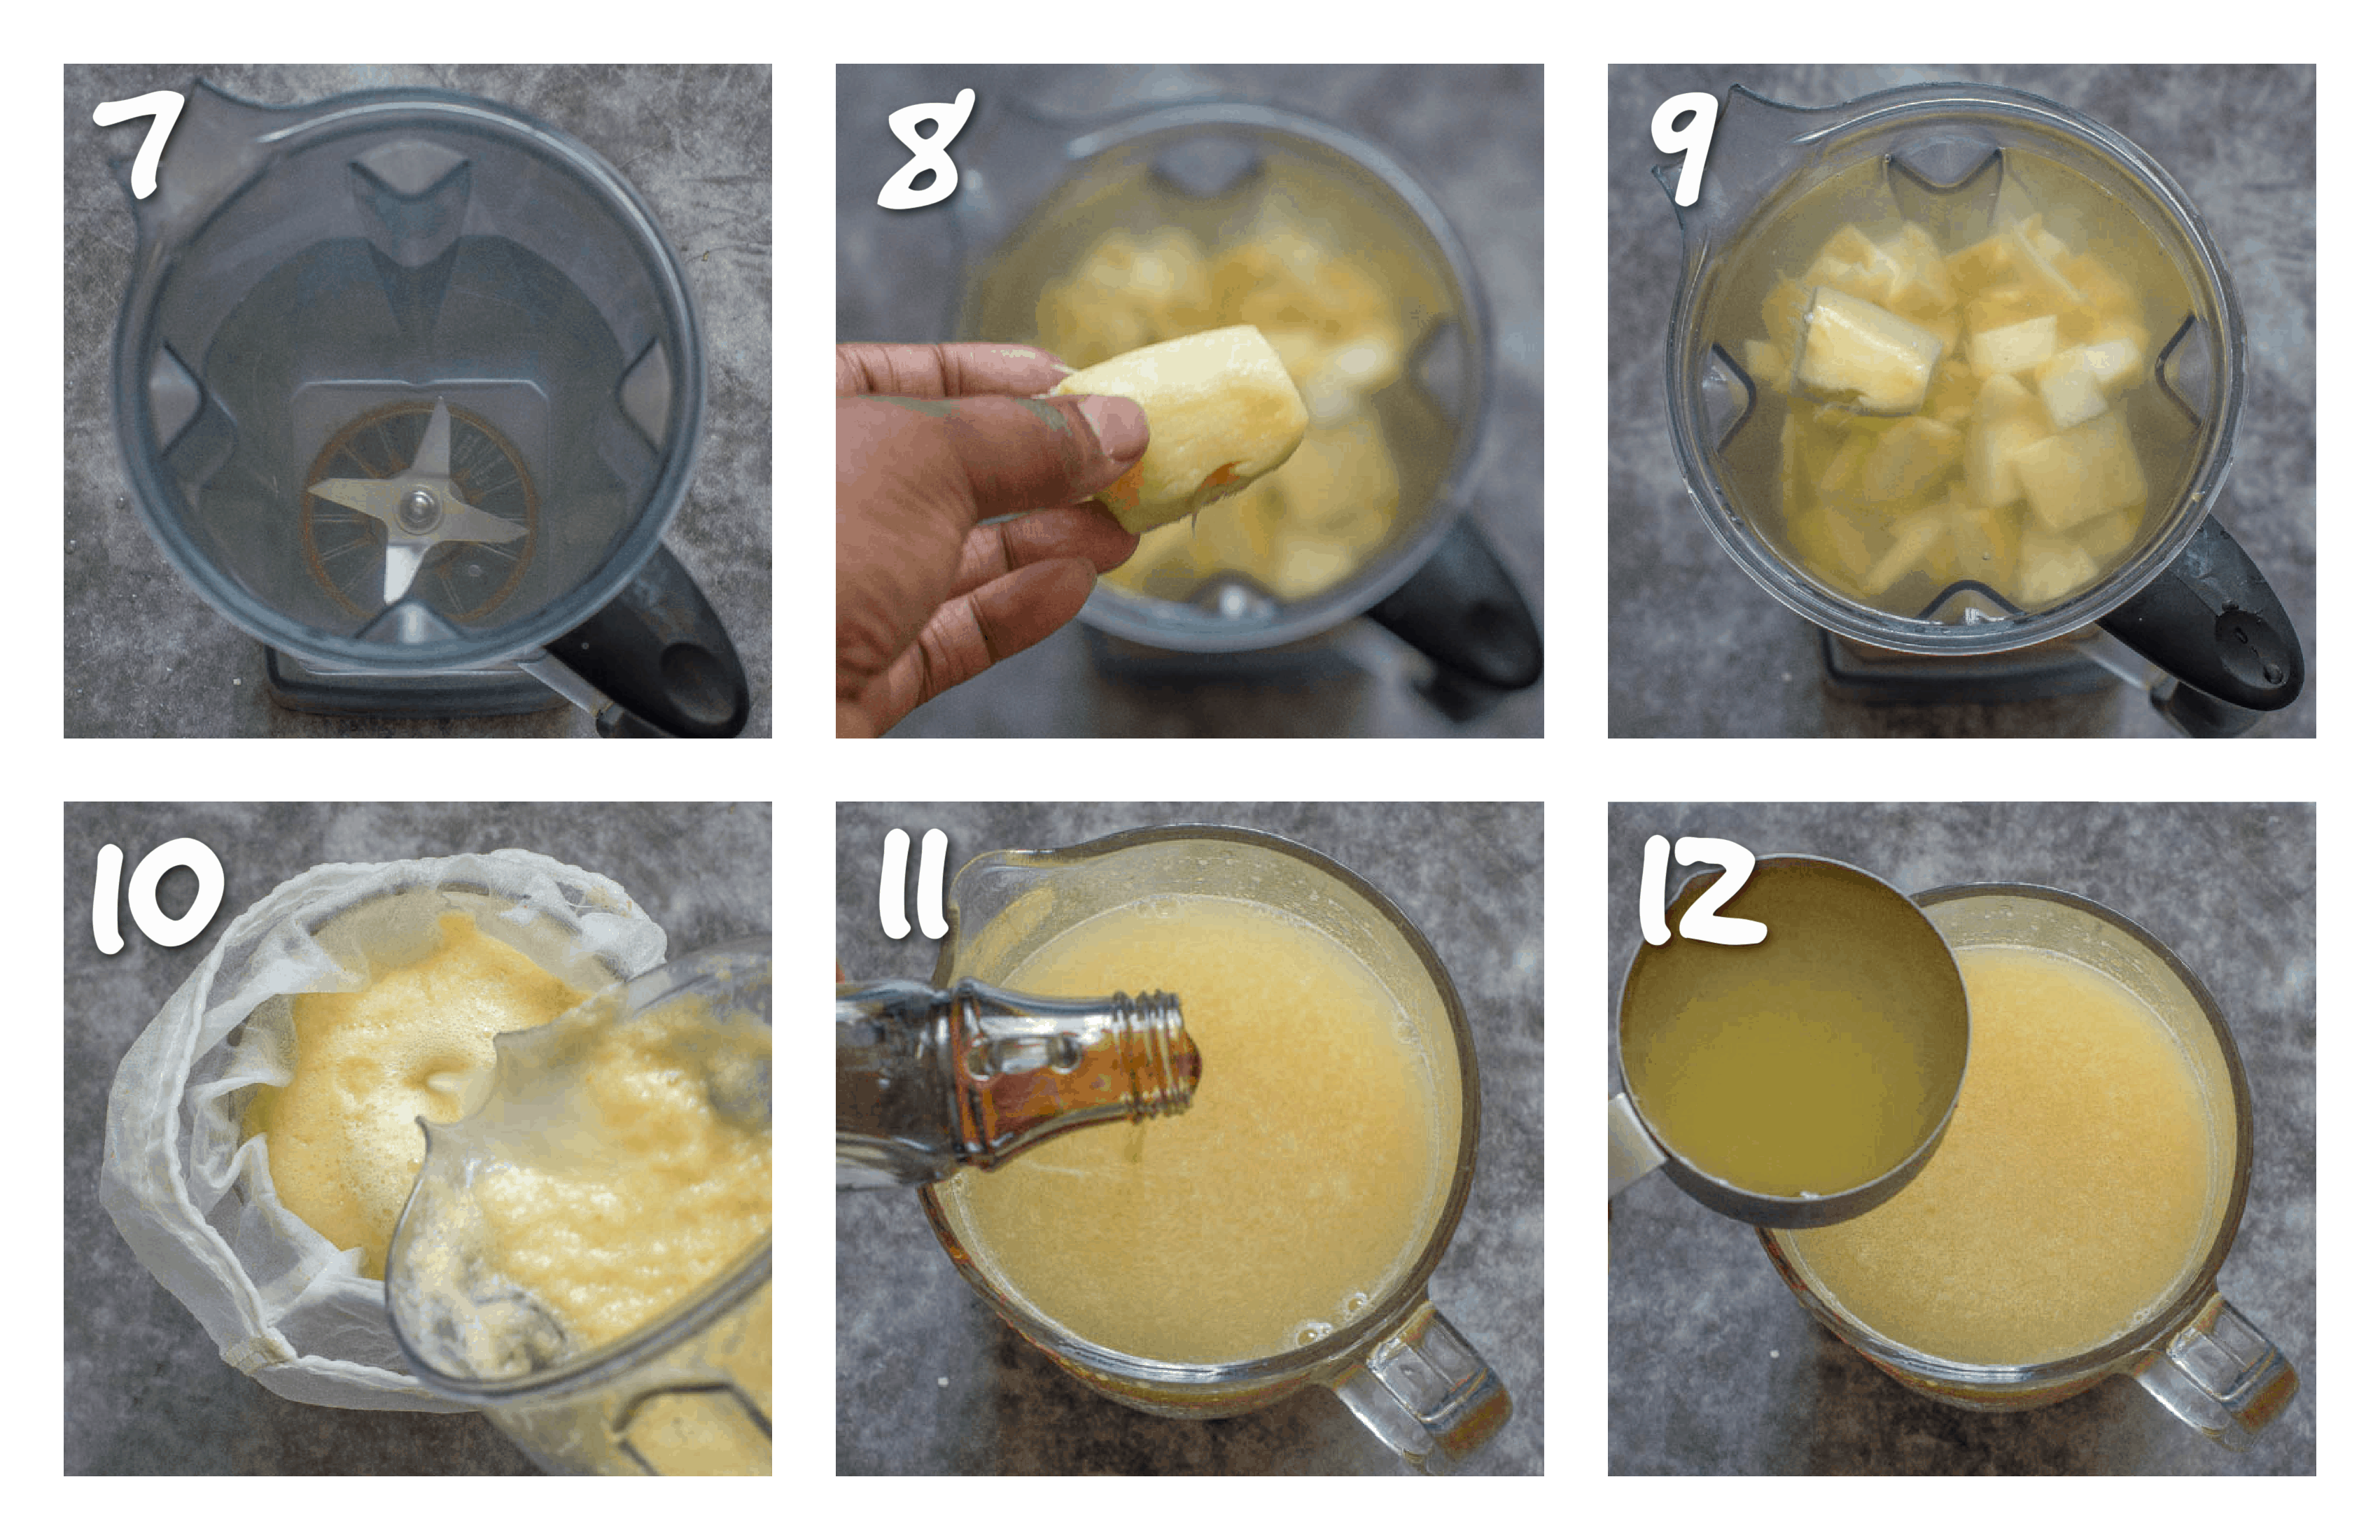 steps7-12 adding the fruit to the blender then straining it